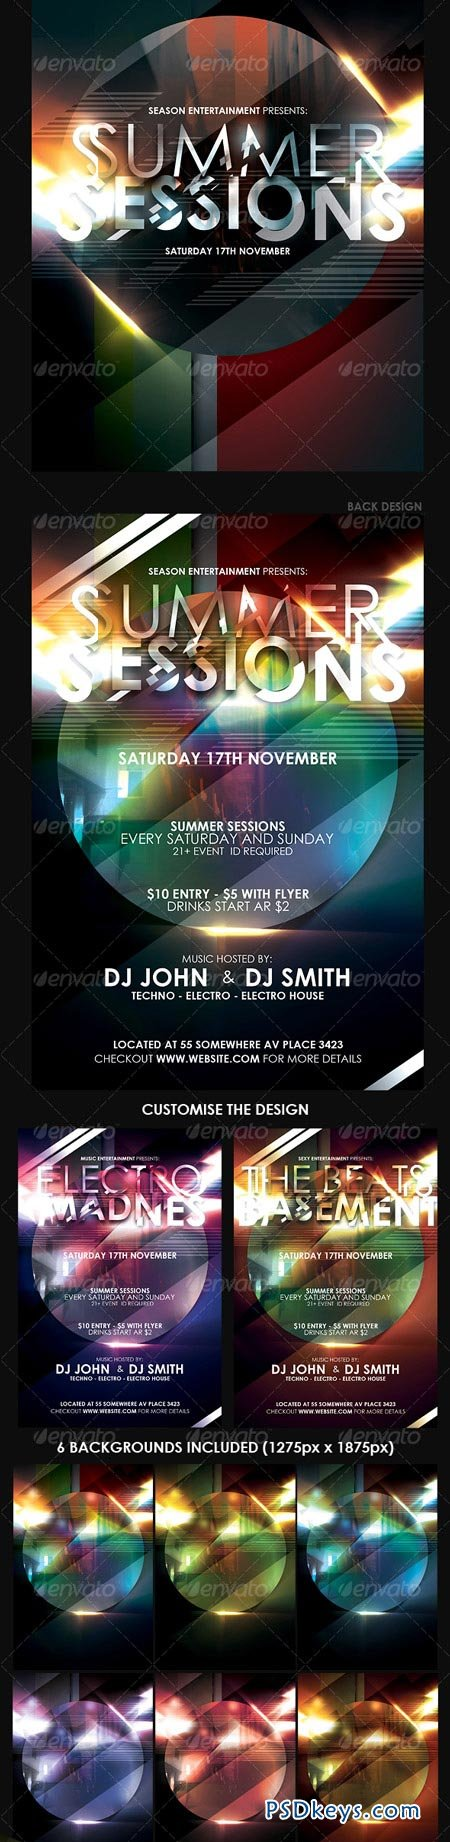 Flyer Postcard Template 102747